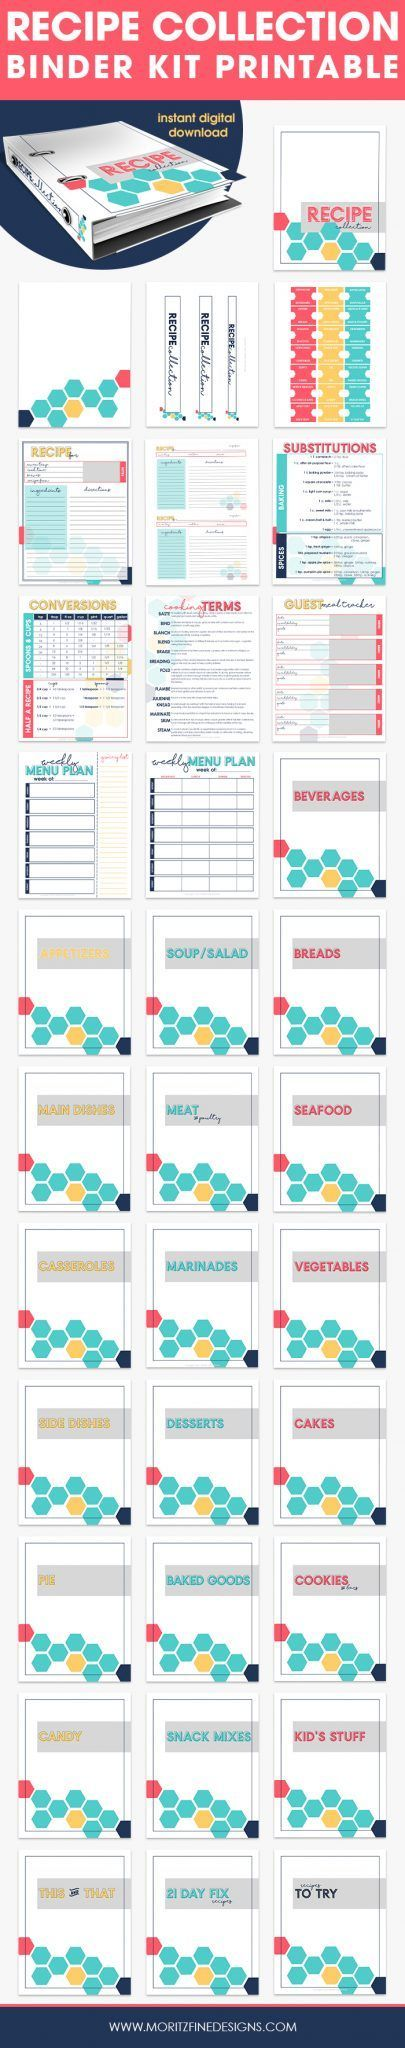 DIY Customizable Recipe Cookbook | Recipe Binder Printable | organize recipes | instant download via @moritzdesigns